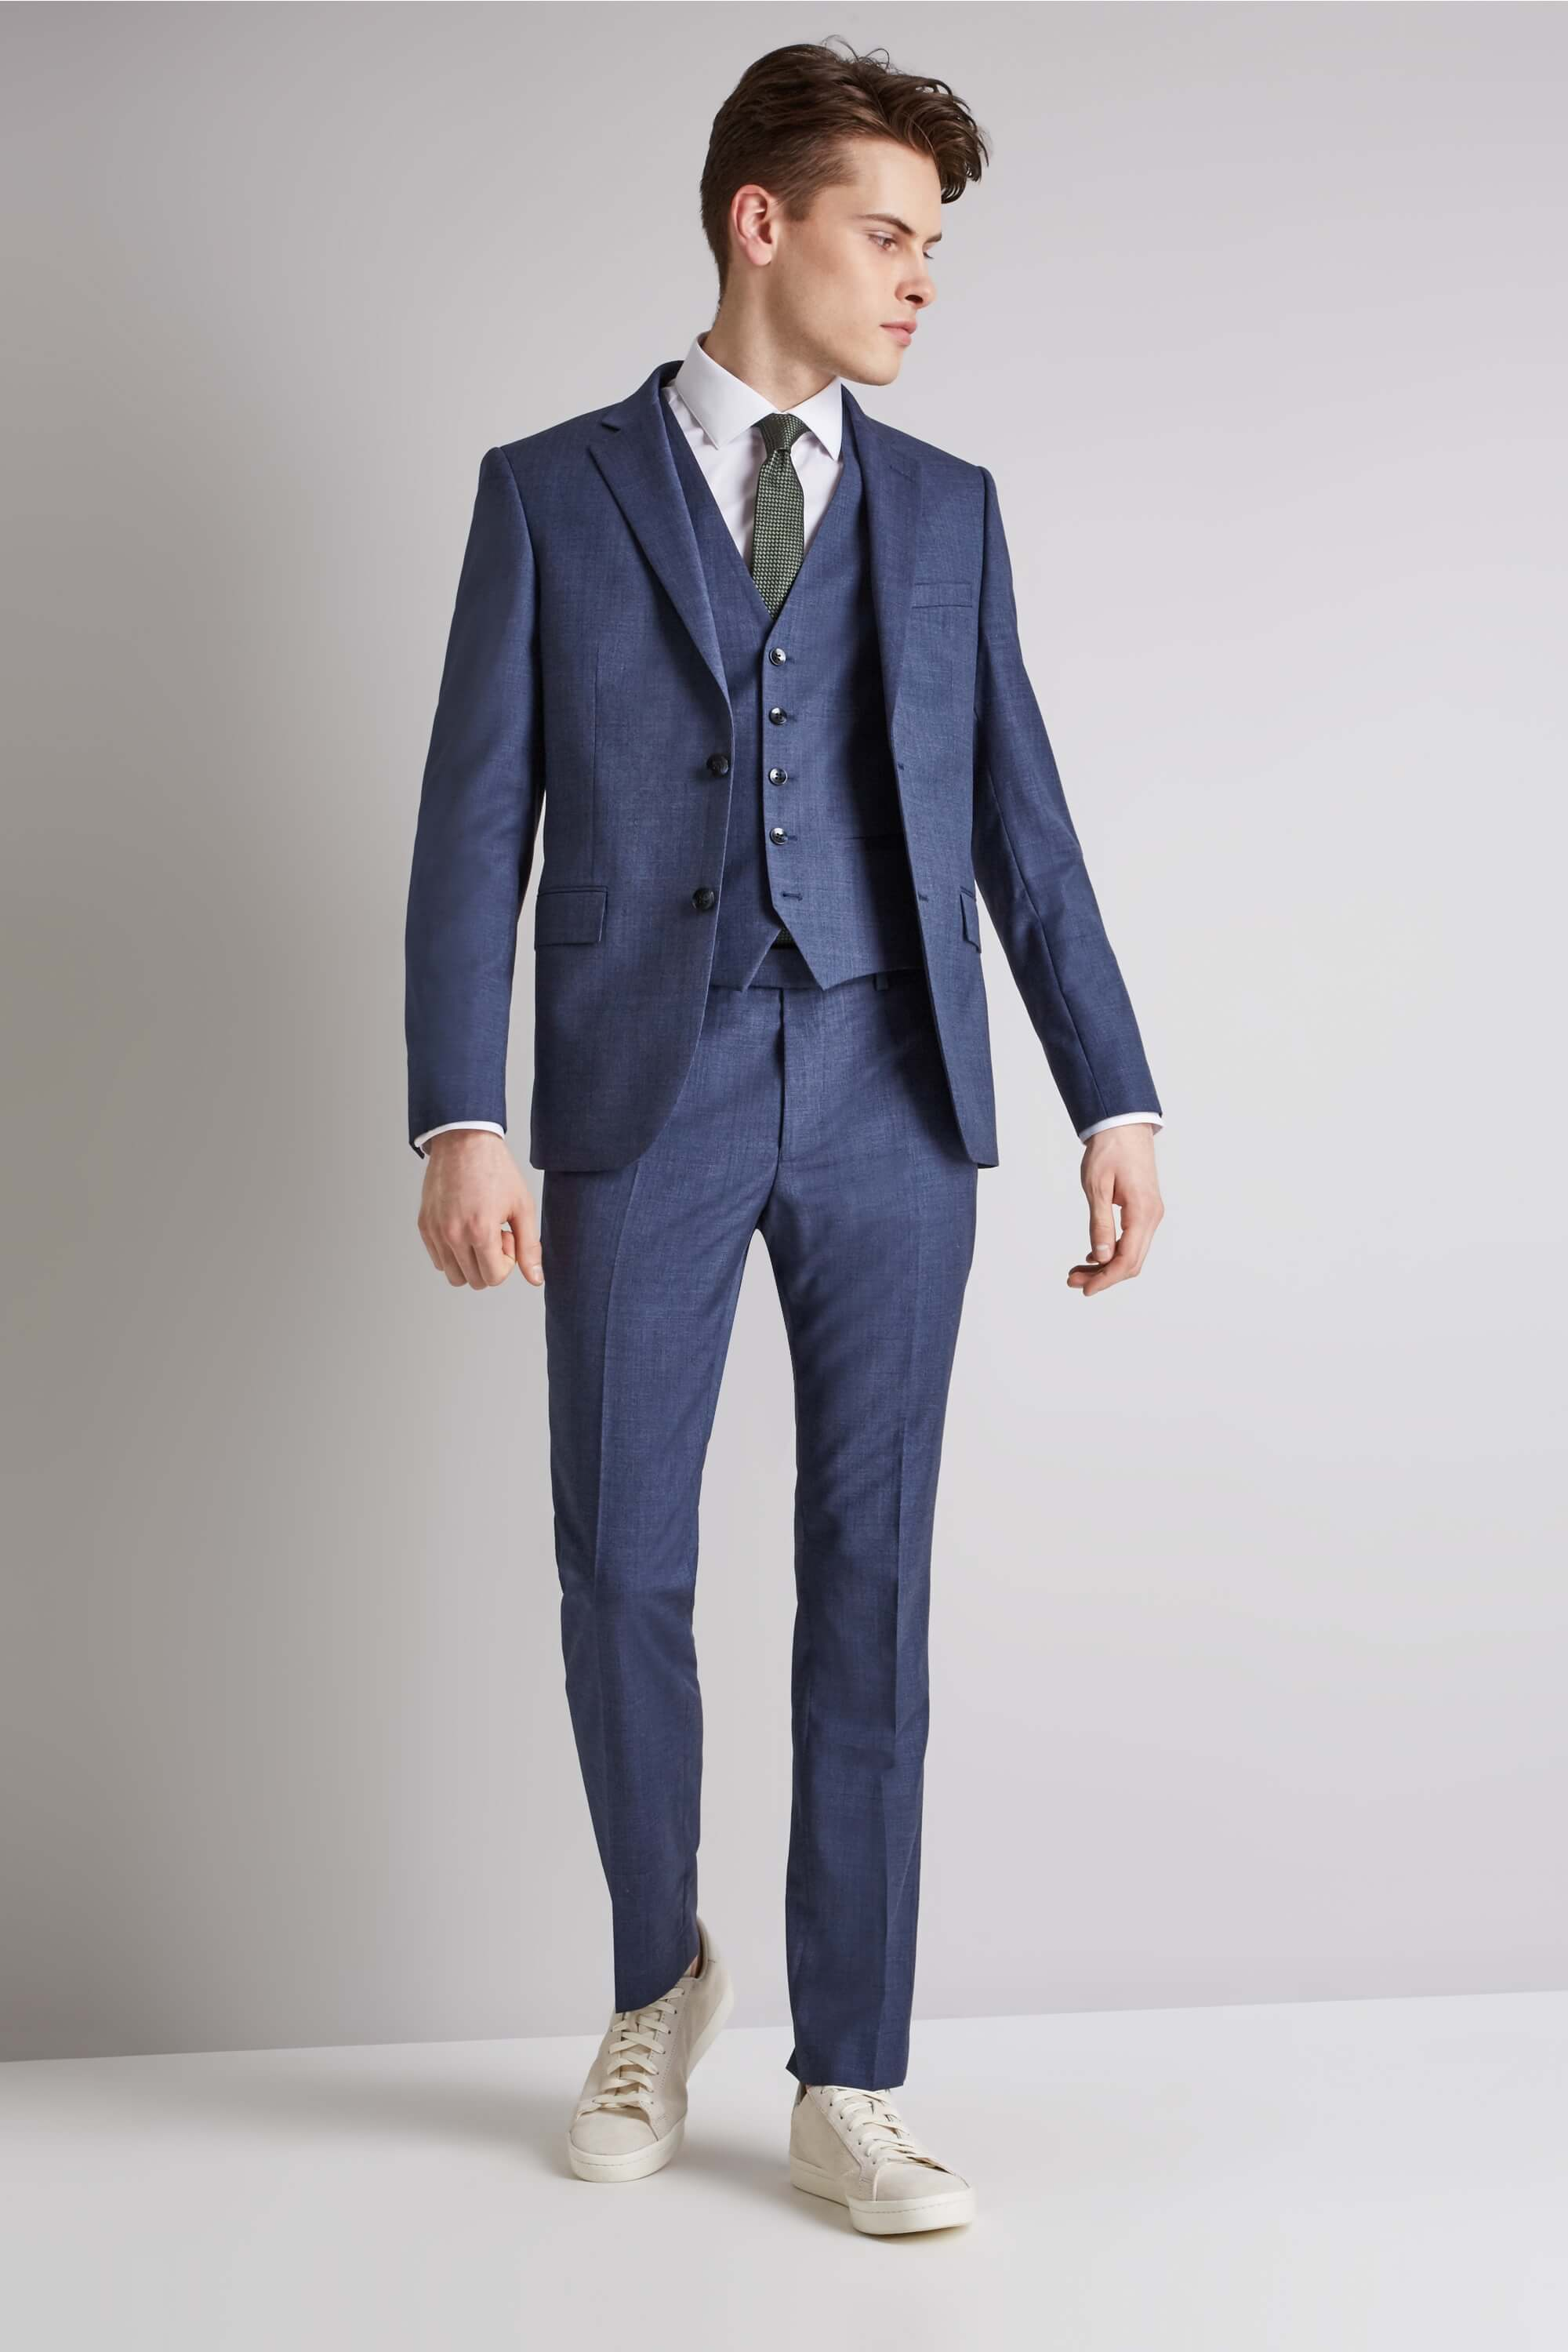 mens style suits for women photo - 1